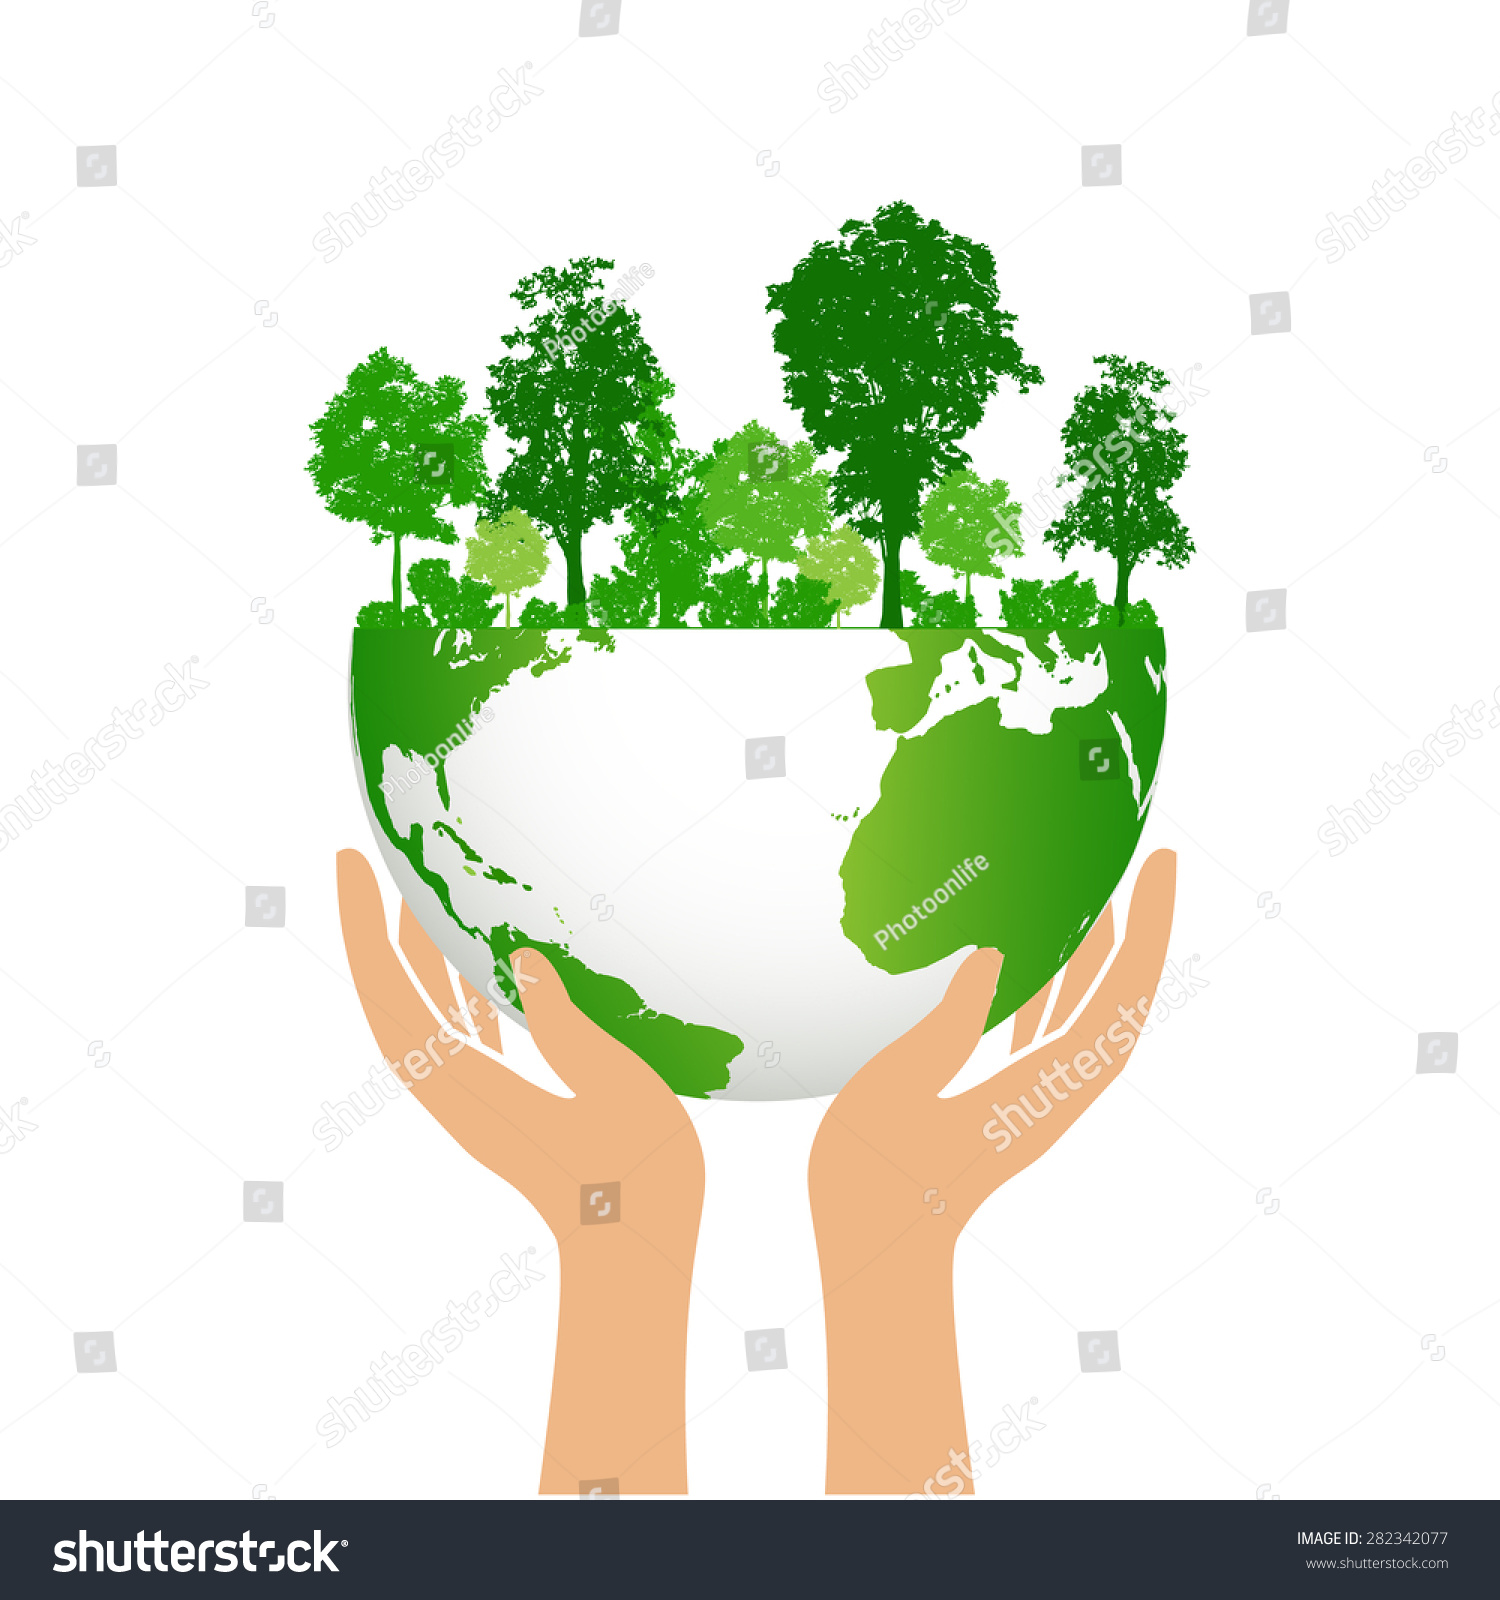 save earth through green energy Save earth through green energy renewable energy is energy which comes from natural resources such as sunlight, wind, rain, tides, and geothermal heat,.